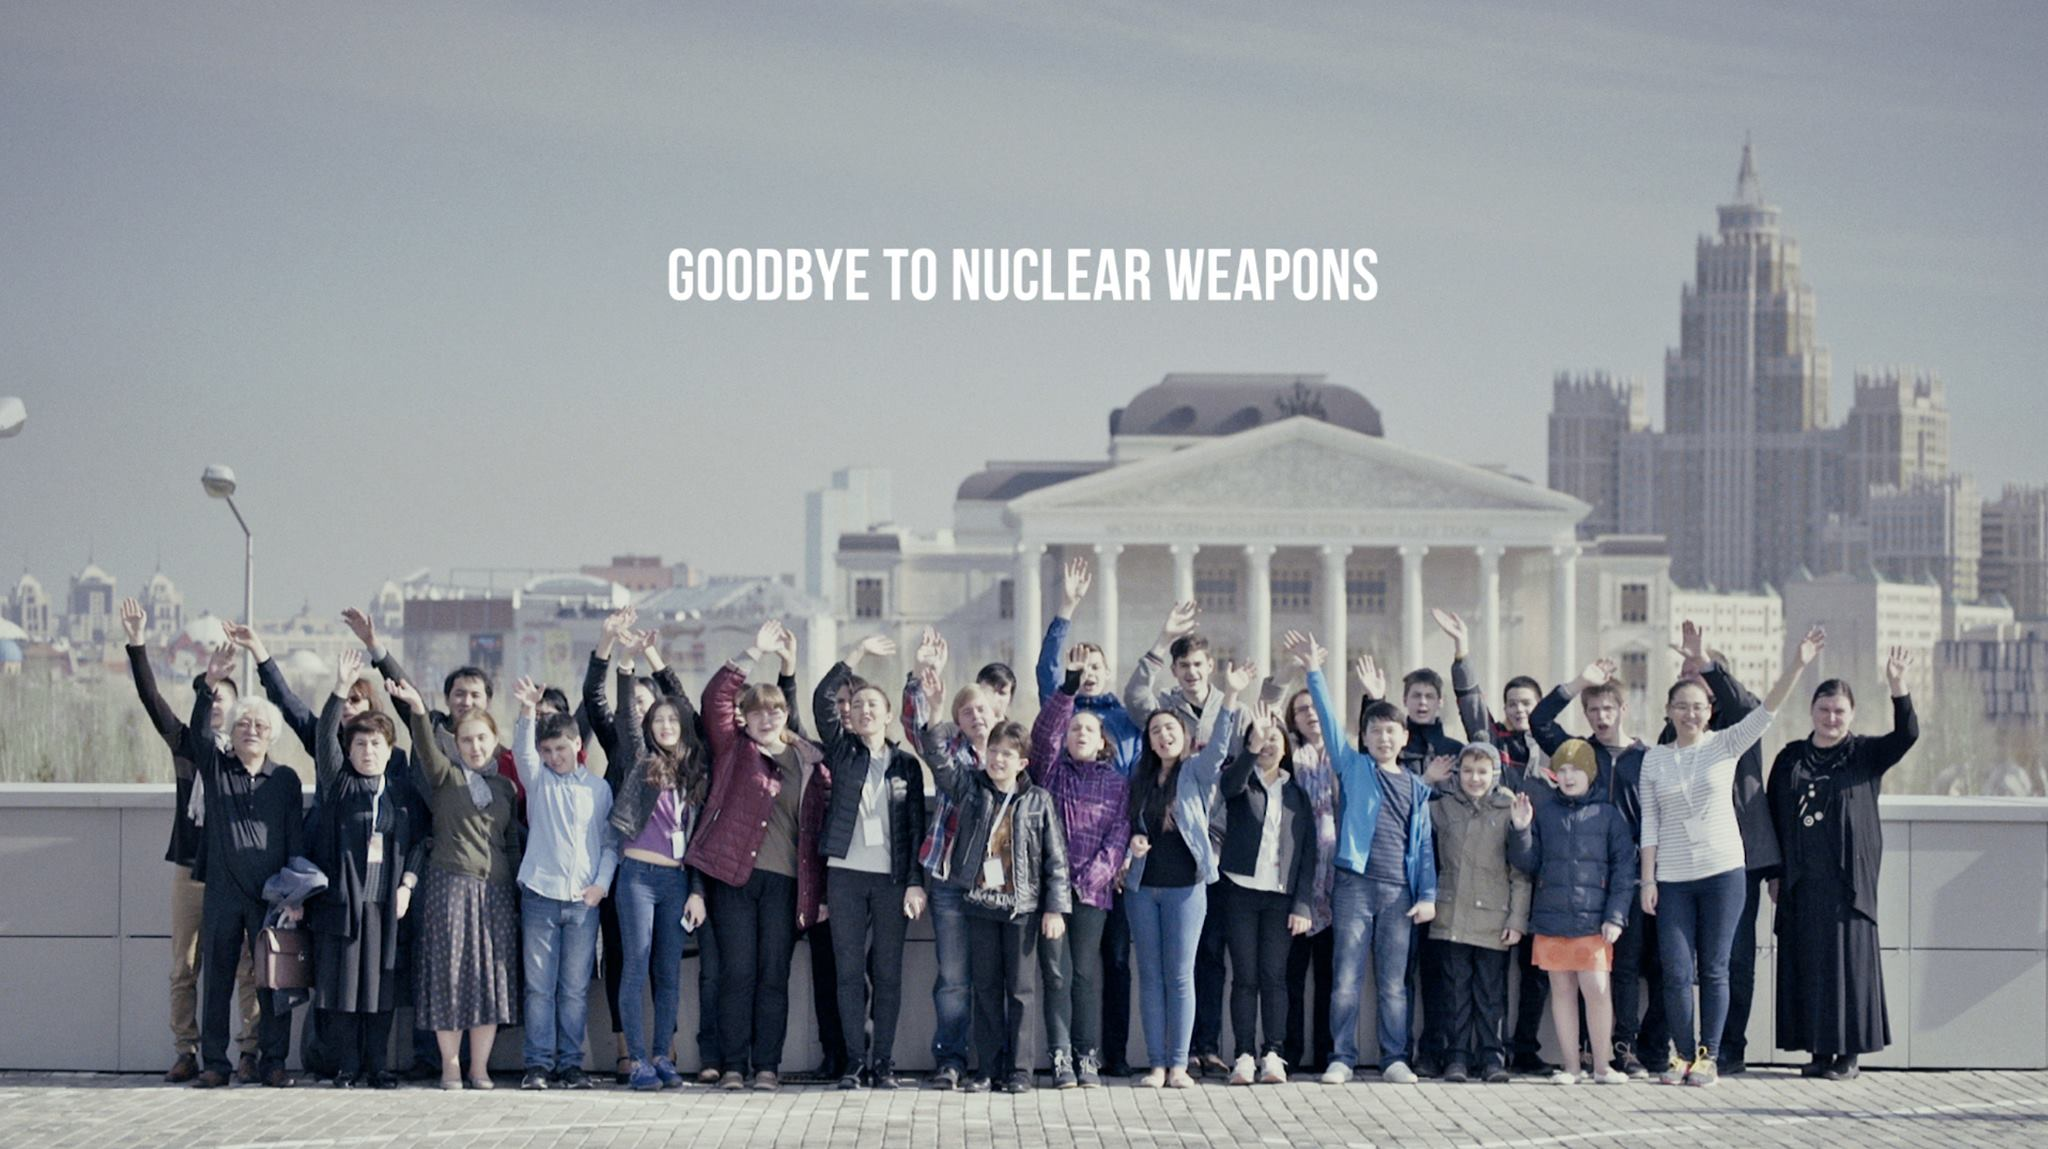 Finalists in the Third International Festival of Classical Music and Competition for Young Pianists wave goodbye to nuclear weapons from Astana (Kazakhstan), where the festival is being held.